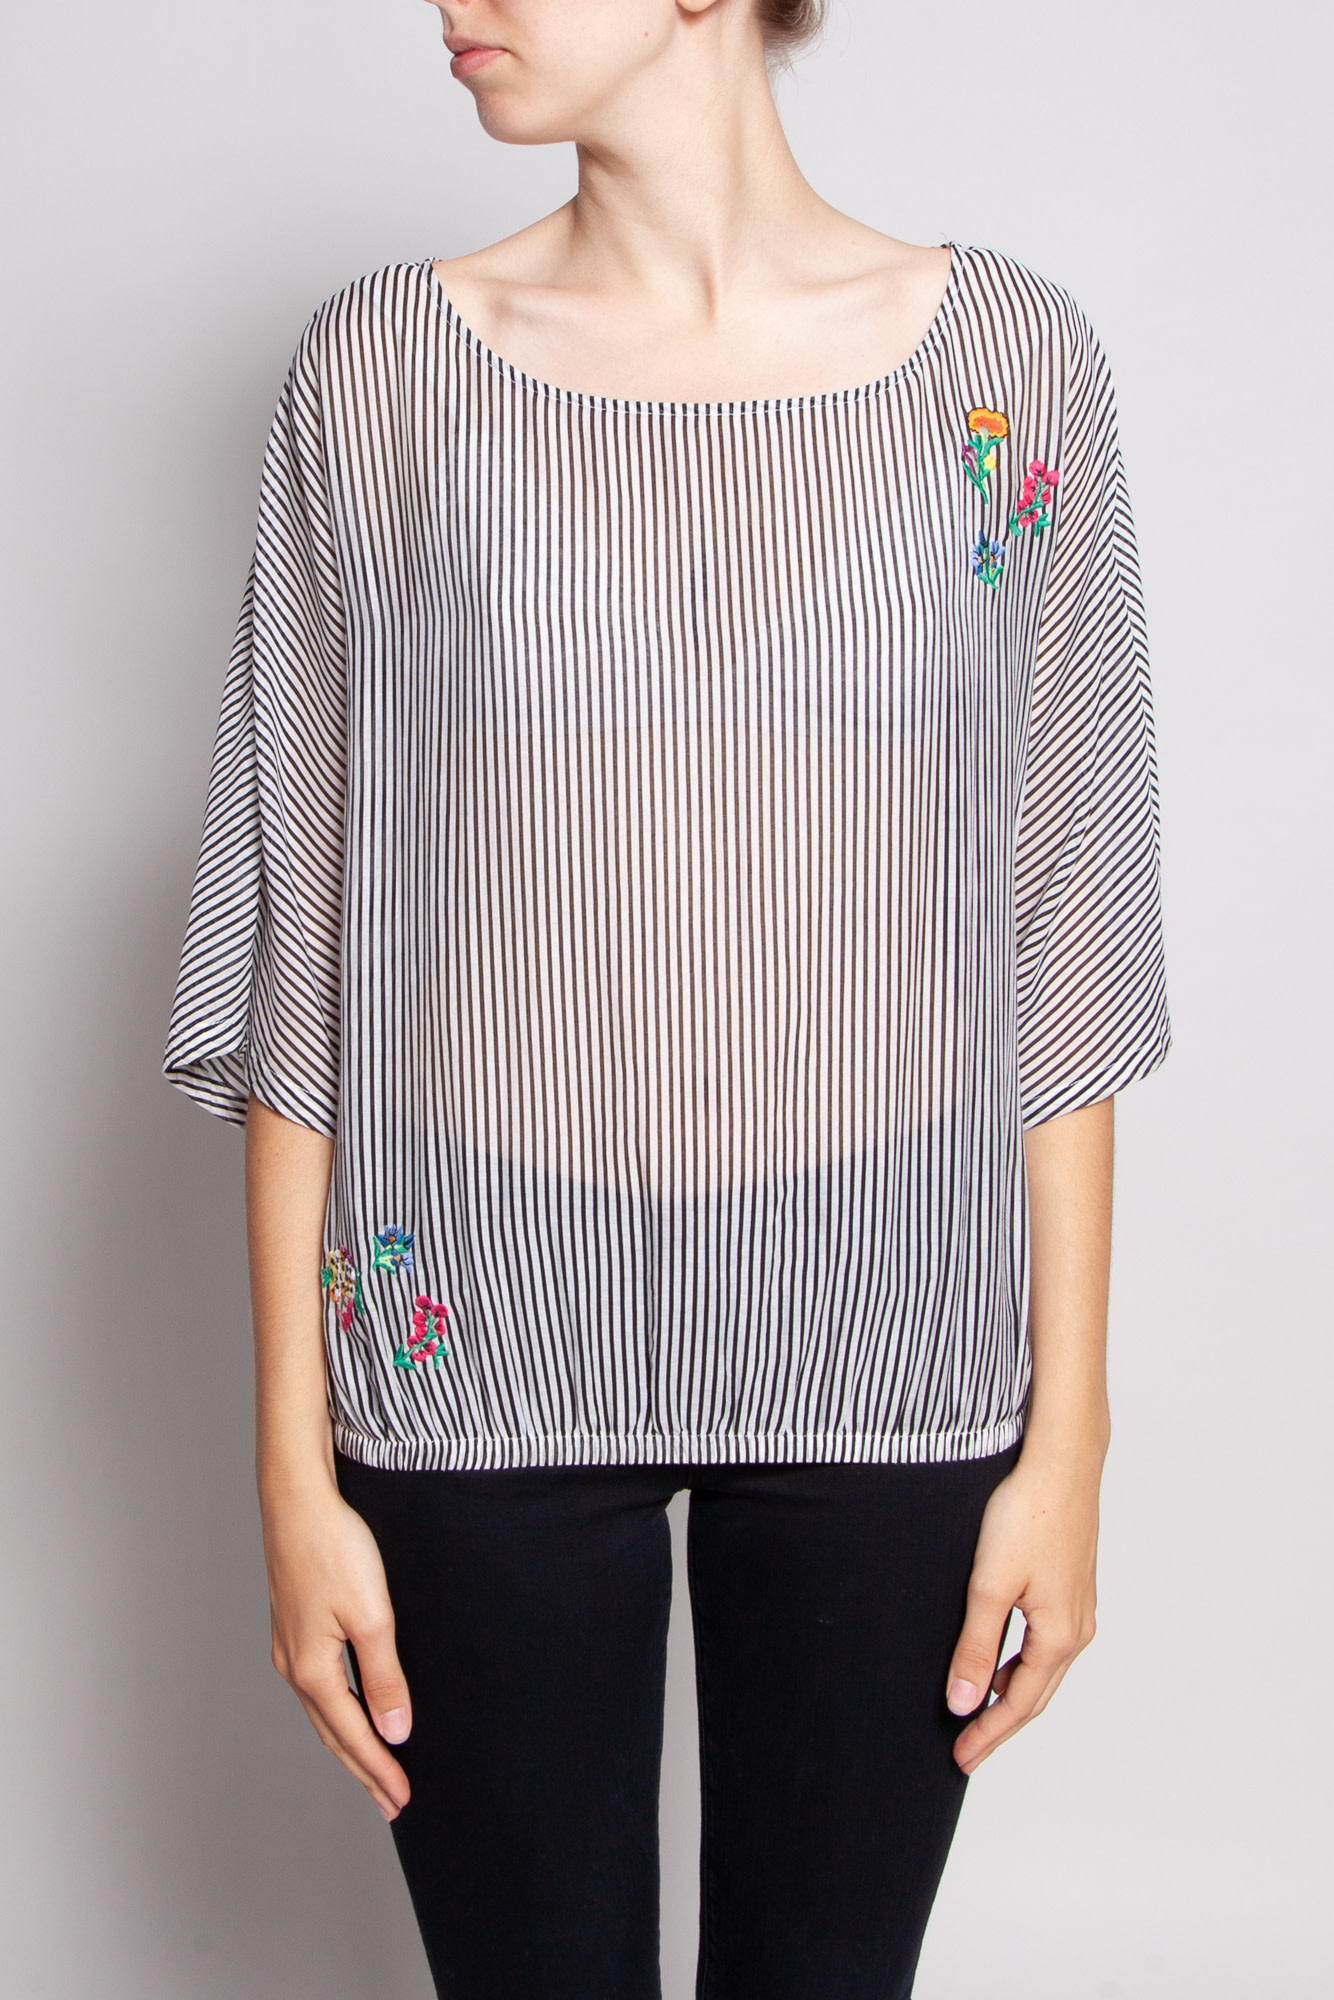 Twin Set STRIPED TOP WITH FLOWERS EMBROIDERY